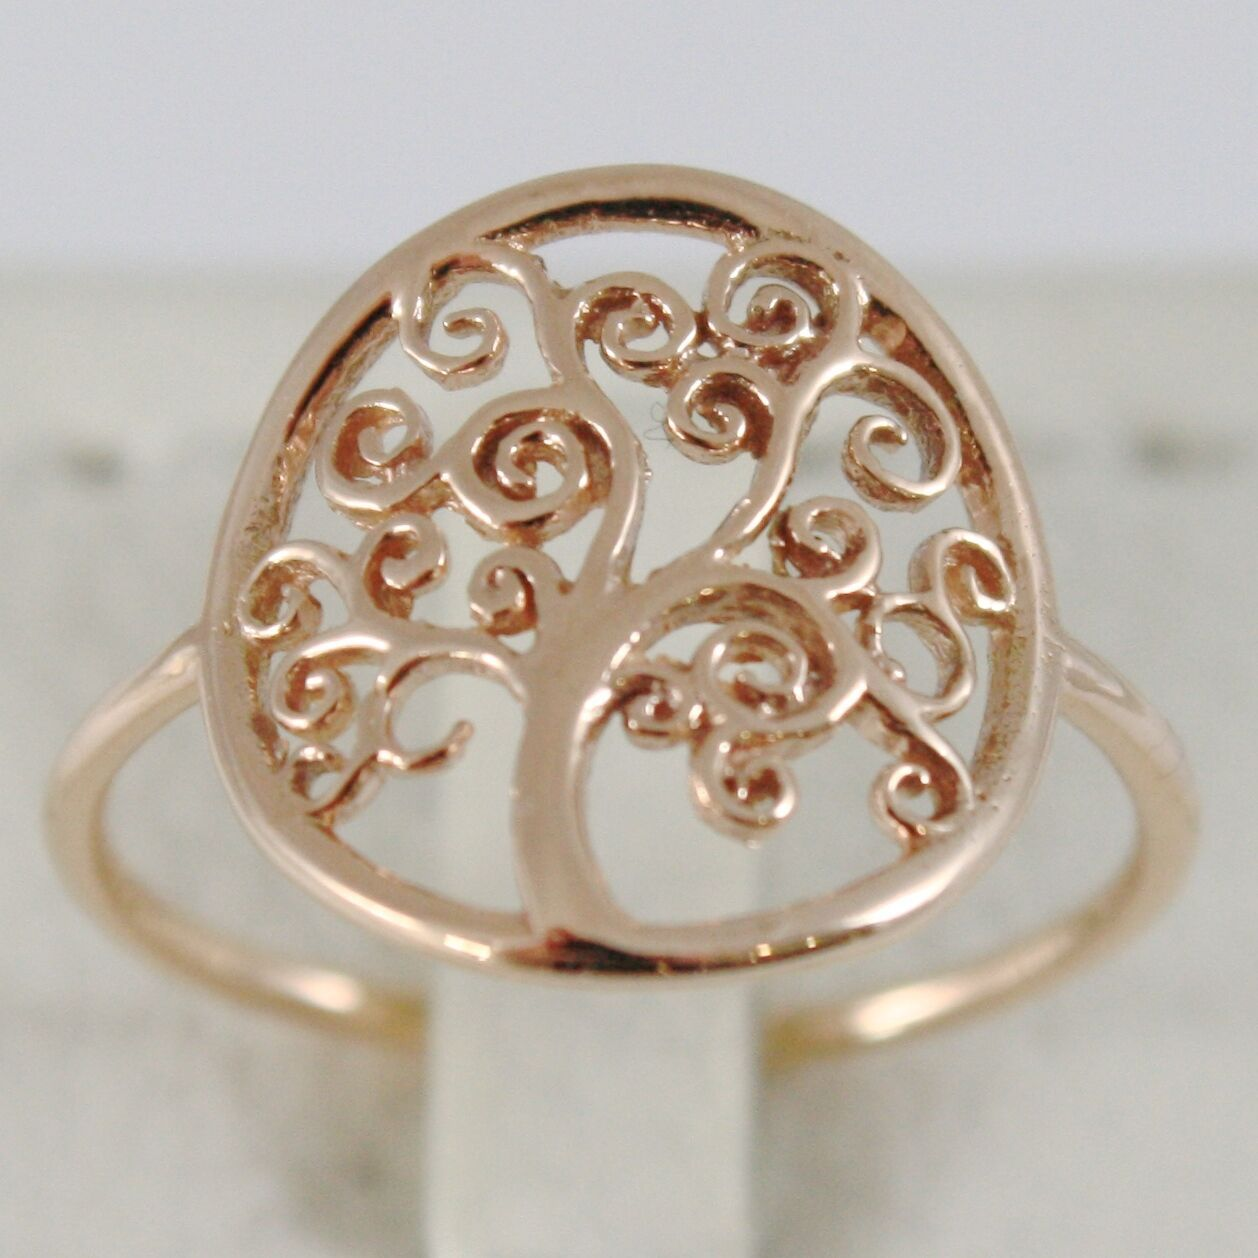 18K ROSE GOLD TREE OF LIFE RING, SMOOTH, BRIGHT, LUMINOUS, MADE IN ITALY